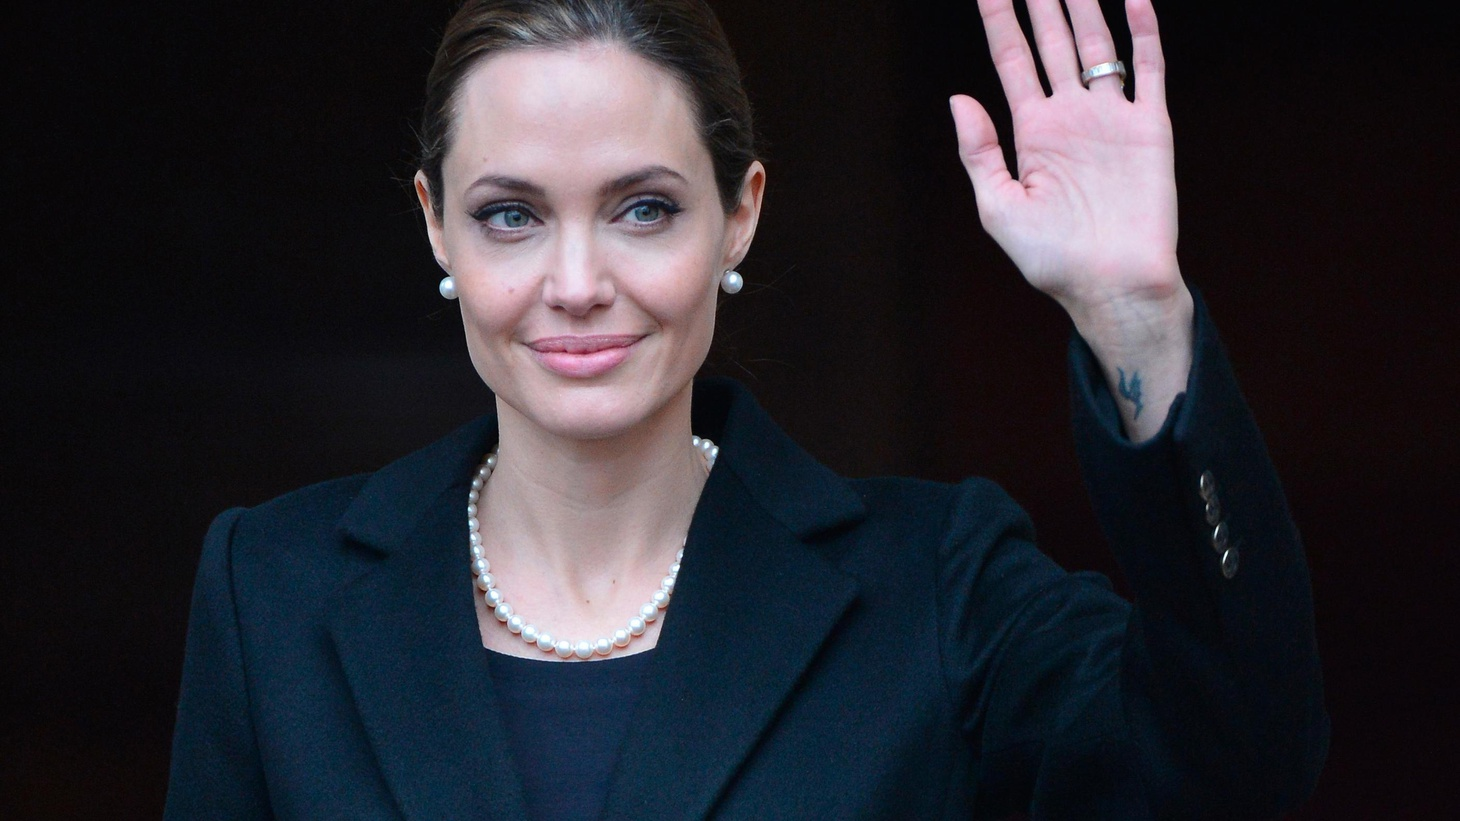 Angelina Jolie's revelation of her preventative mastectomy is raising fears as well as some reassurance. Even those who applaud her courage worry about over-reaction.